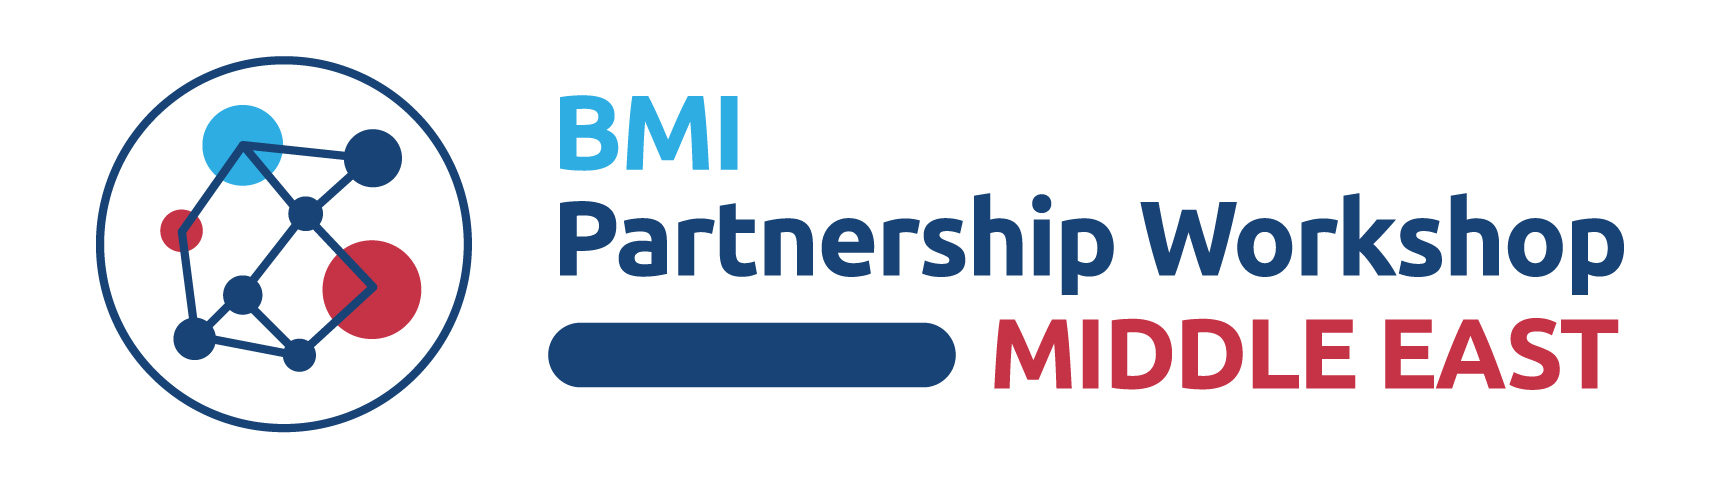 BMI Partnership Workshop Middle East